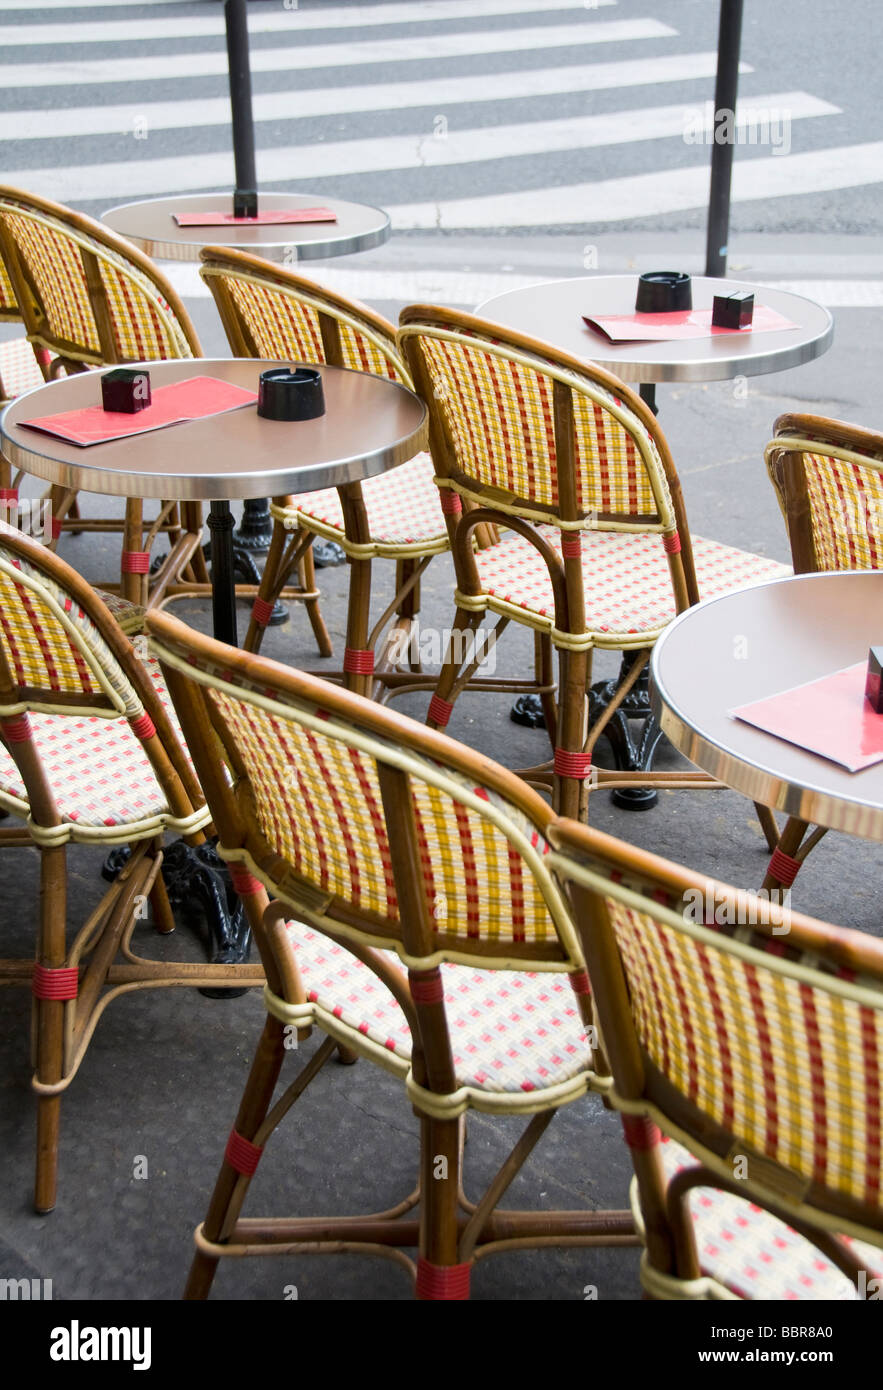 typical generic outdoor cafe setting paris france with tables and chairs on the sidewalk & typical generic outdoor cafe setting paris france with tables and ...